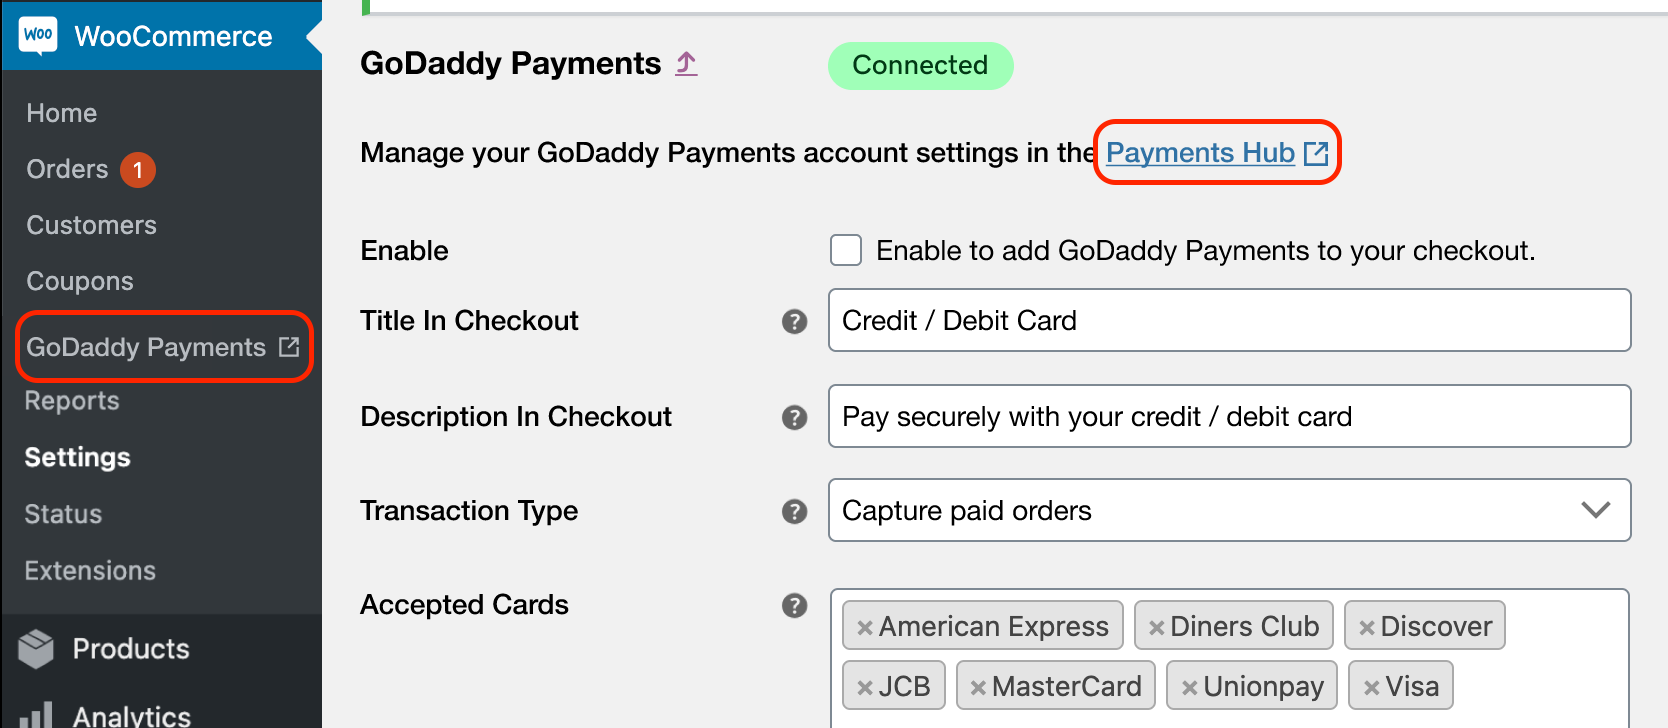 log in to GoDaddy Payments Hub